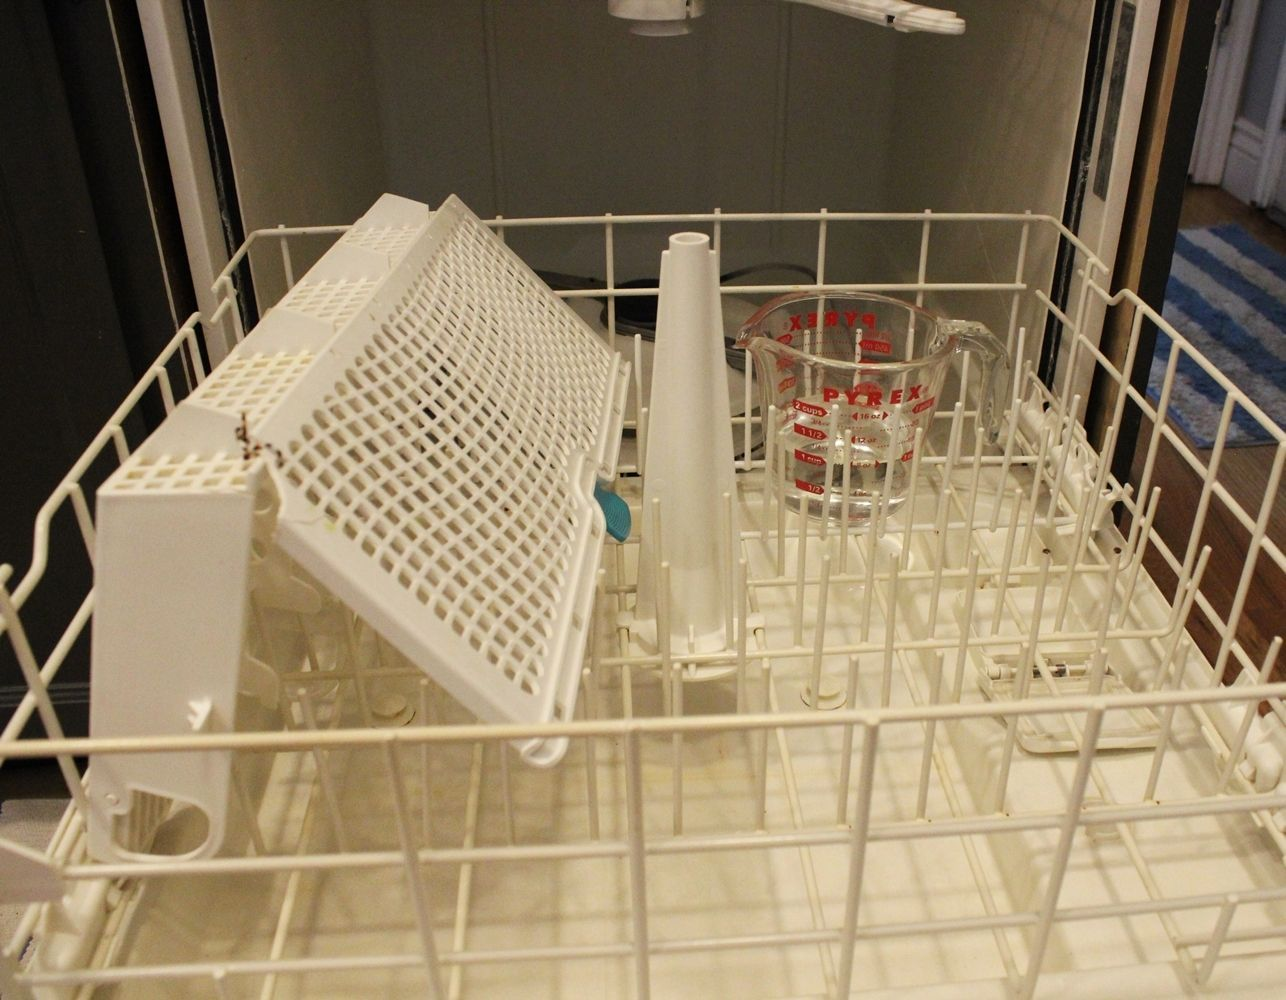 How To Clean A Dishwasher Naturally